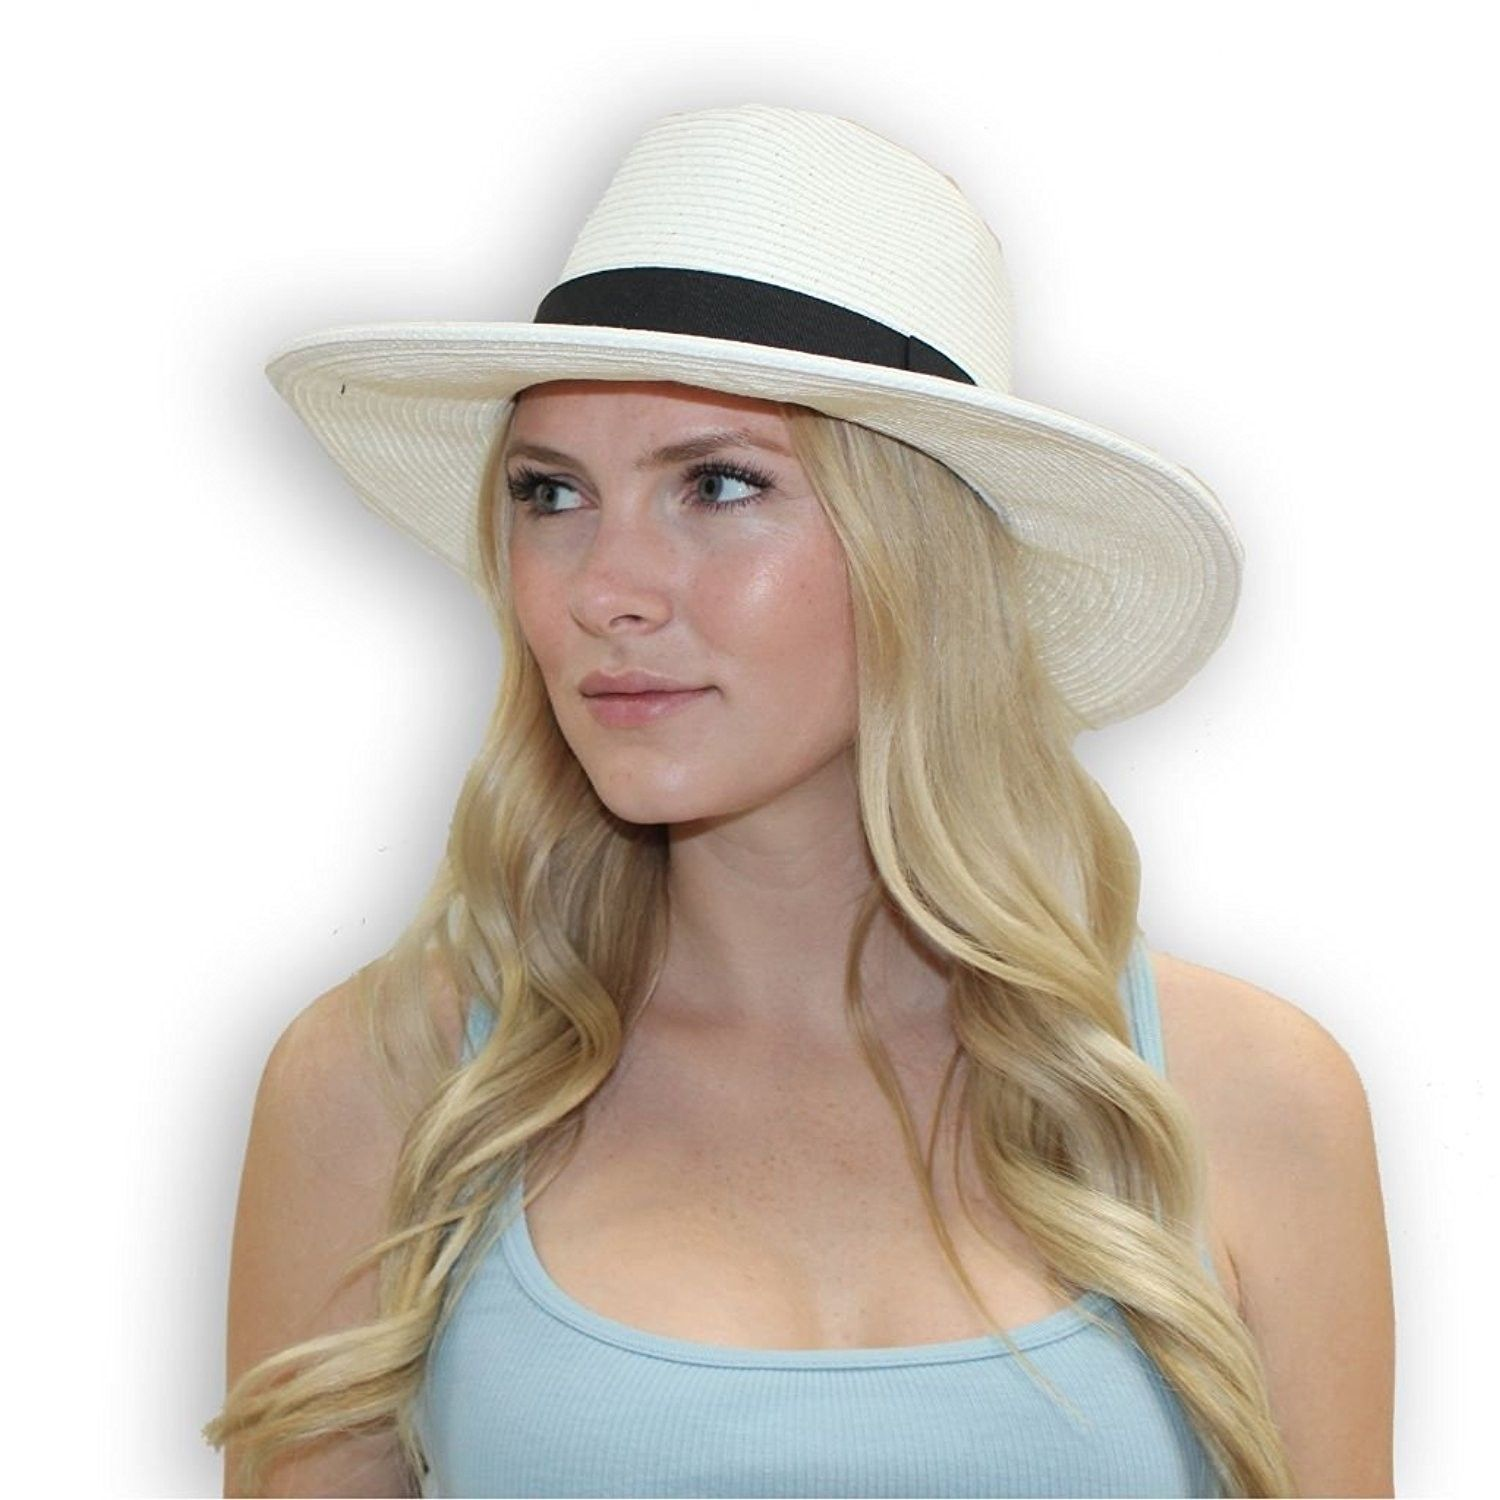 Stevie Fedora Women s Fashion Derby Hat (Large (Fits up To 23